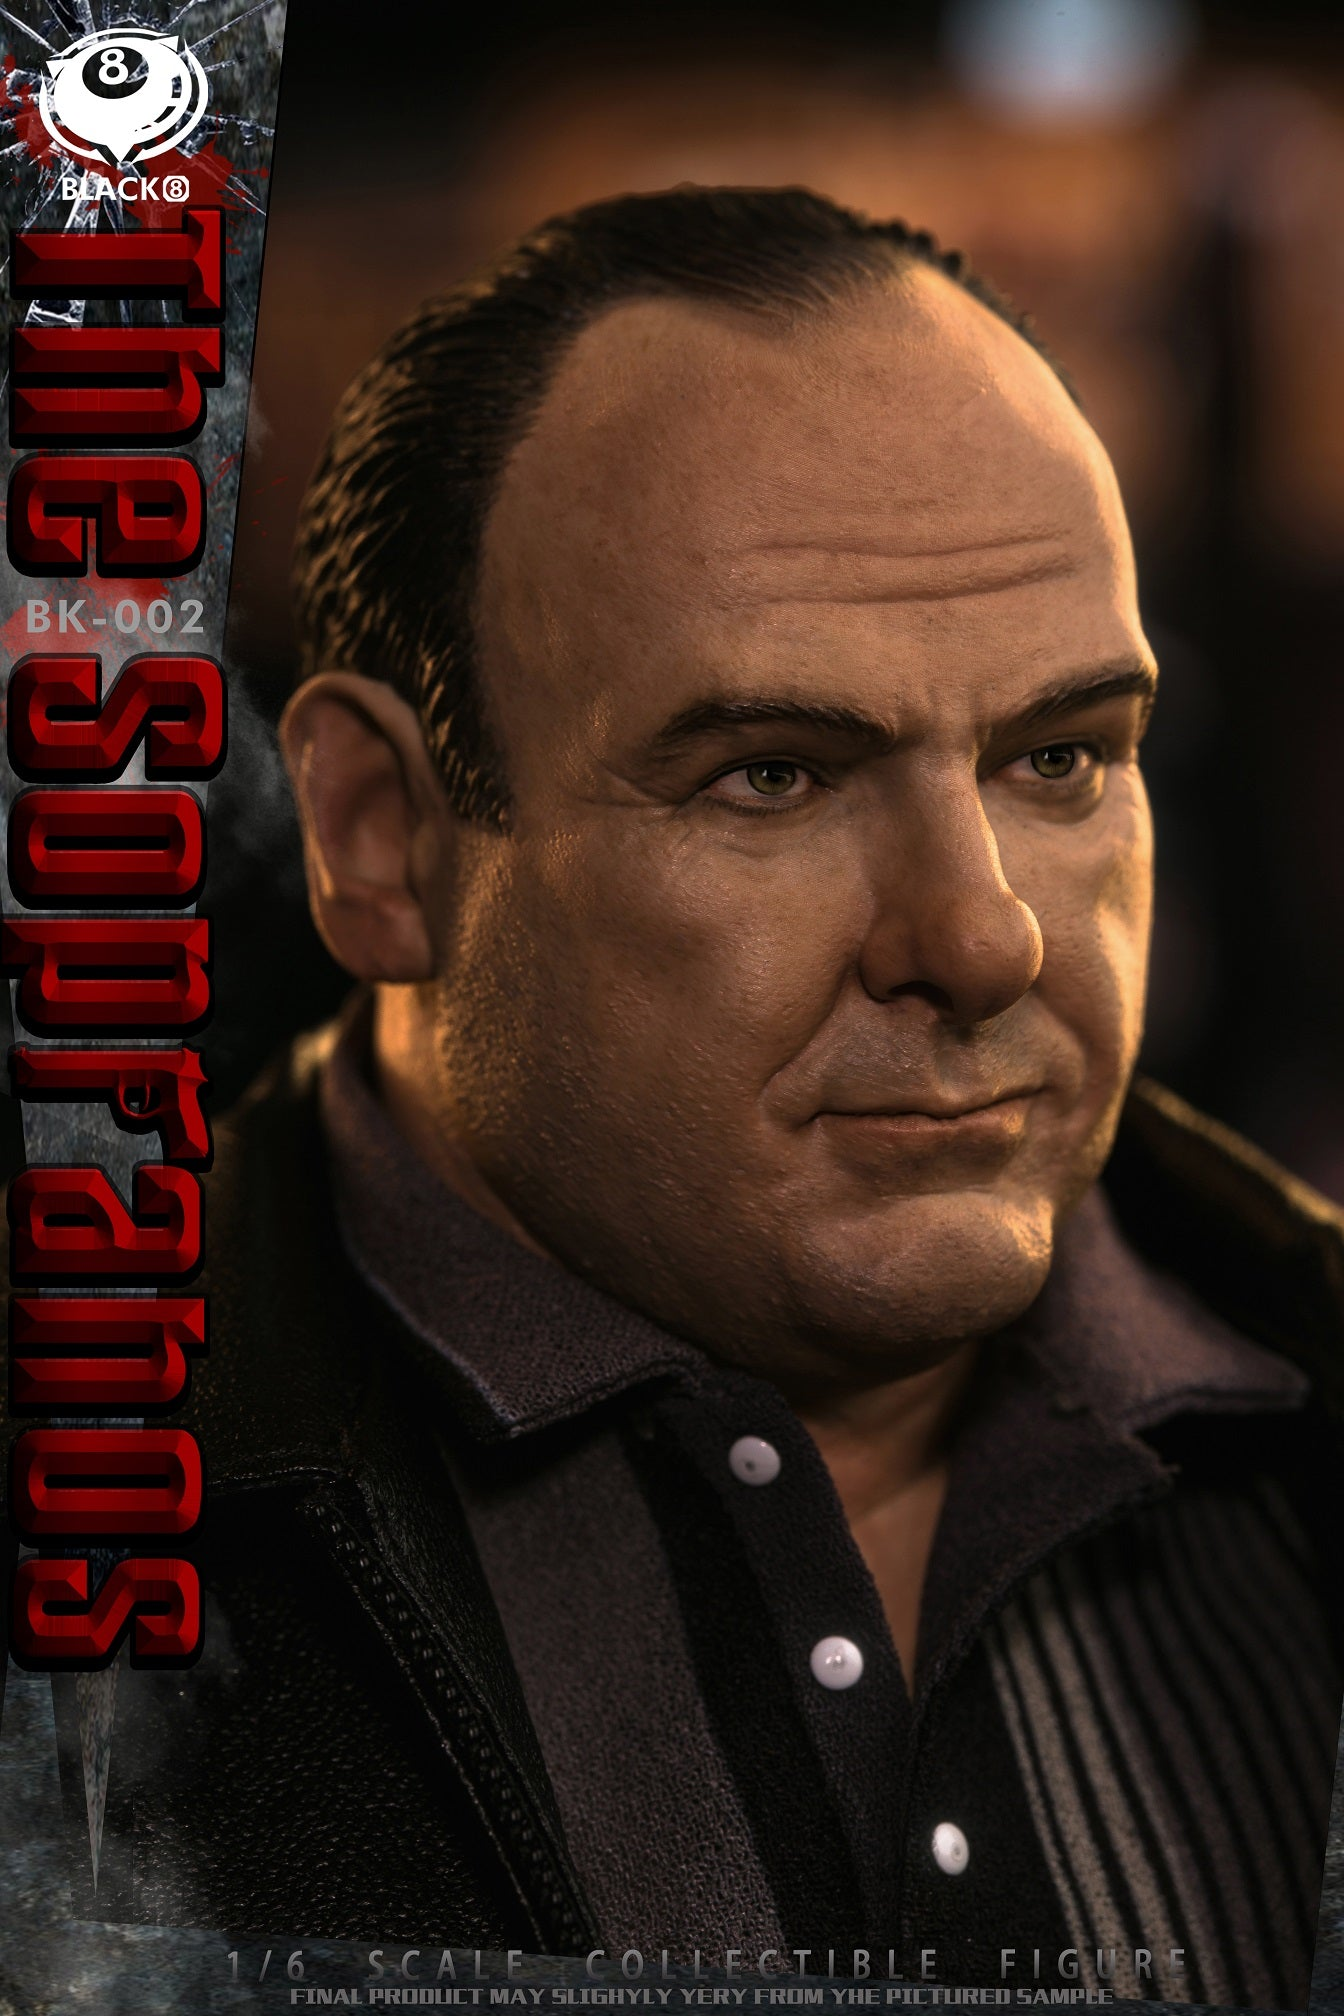 Bank Robber: FO2: Daftoys: Sixth Scale Figure